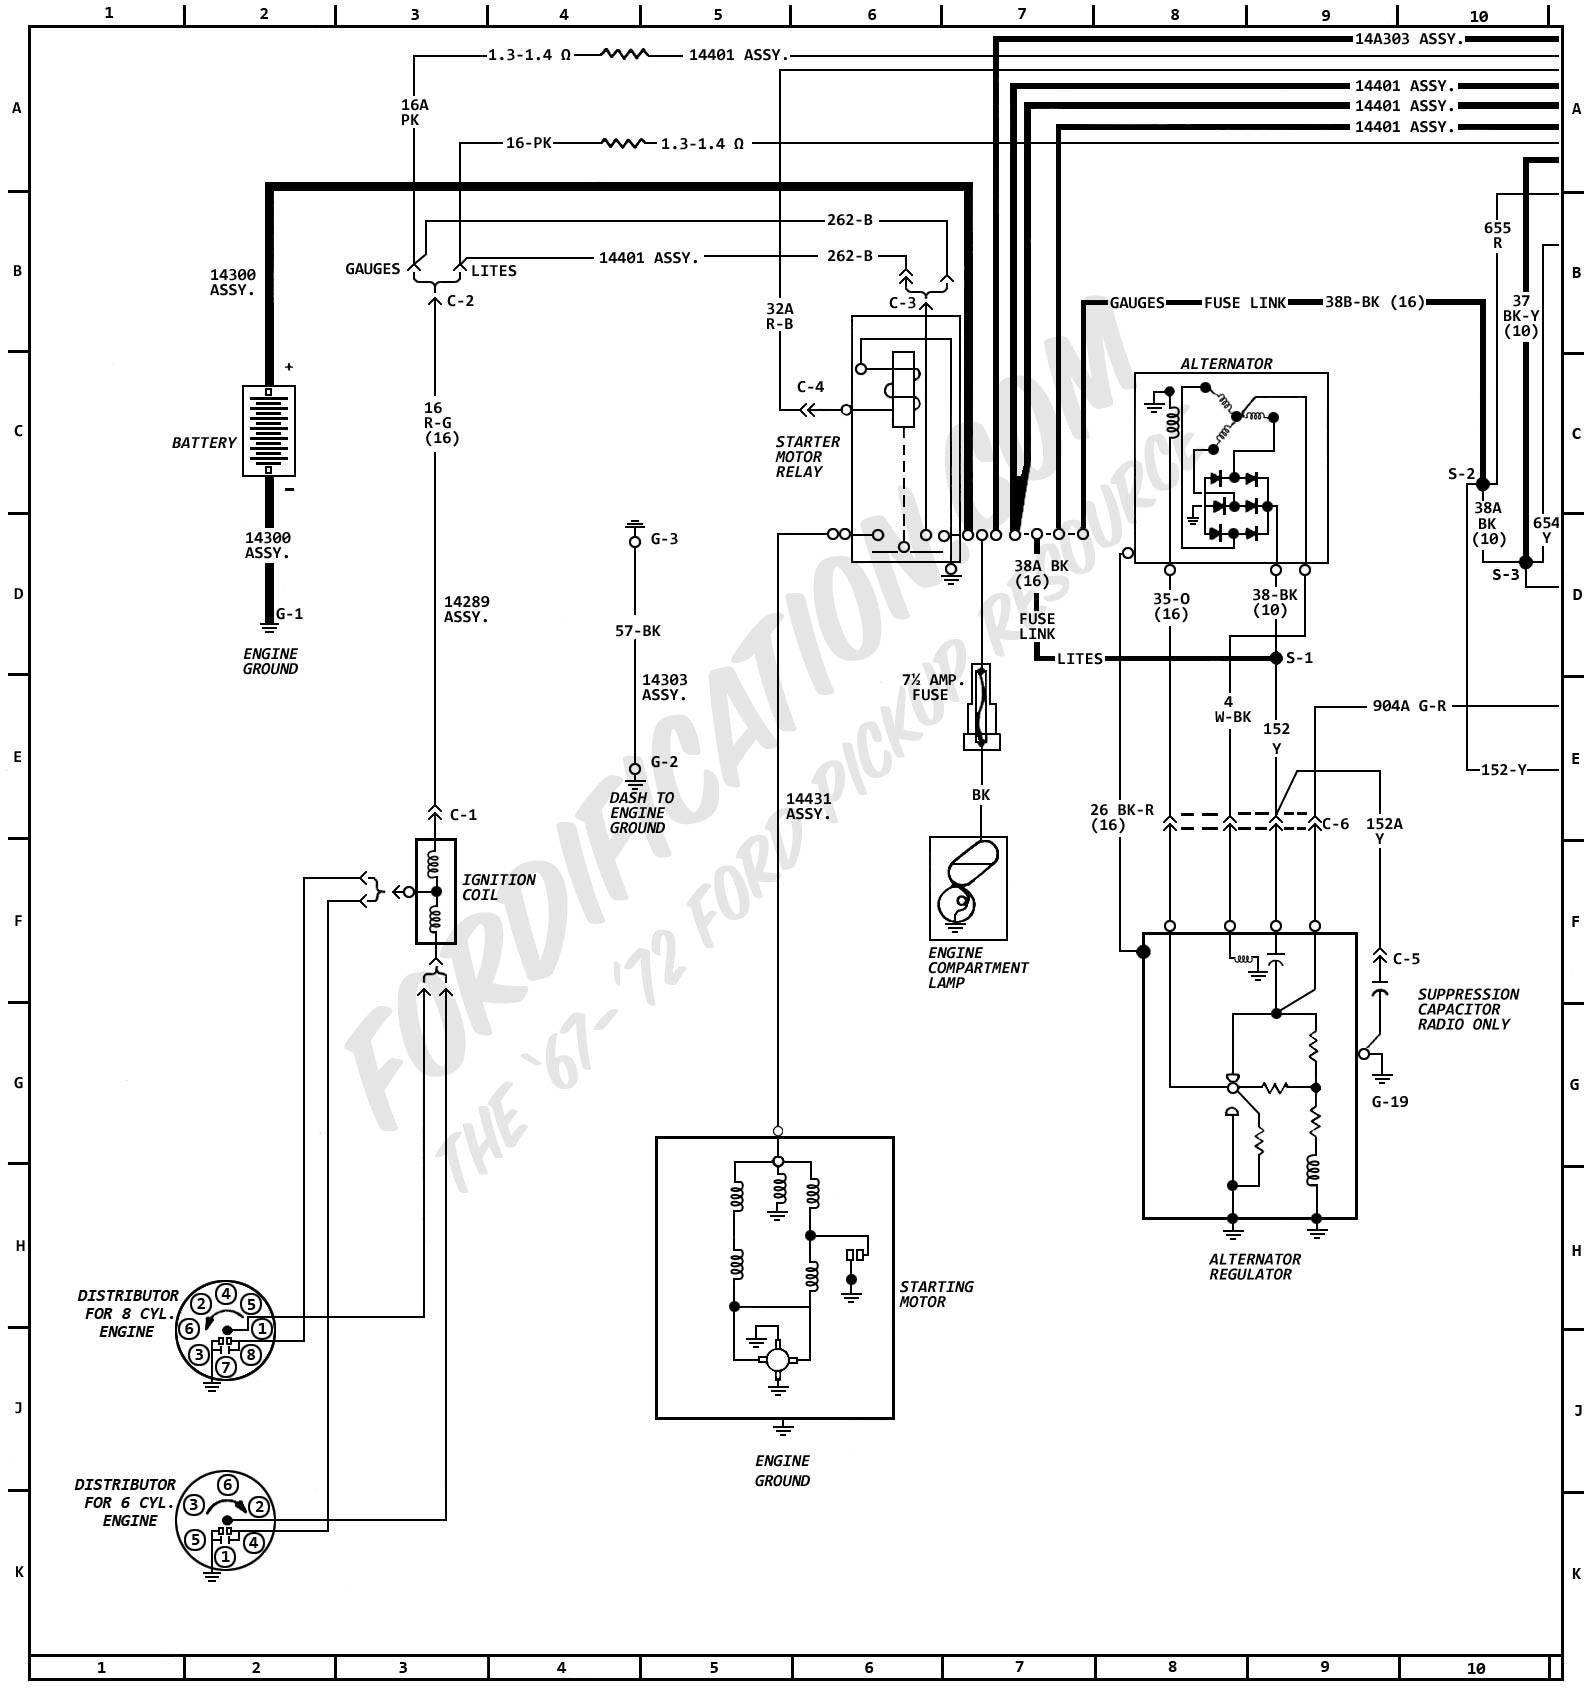 Search Results 1972 Ford F100 Truck Wiring Harness.html